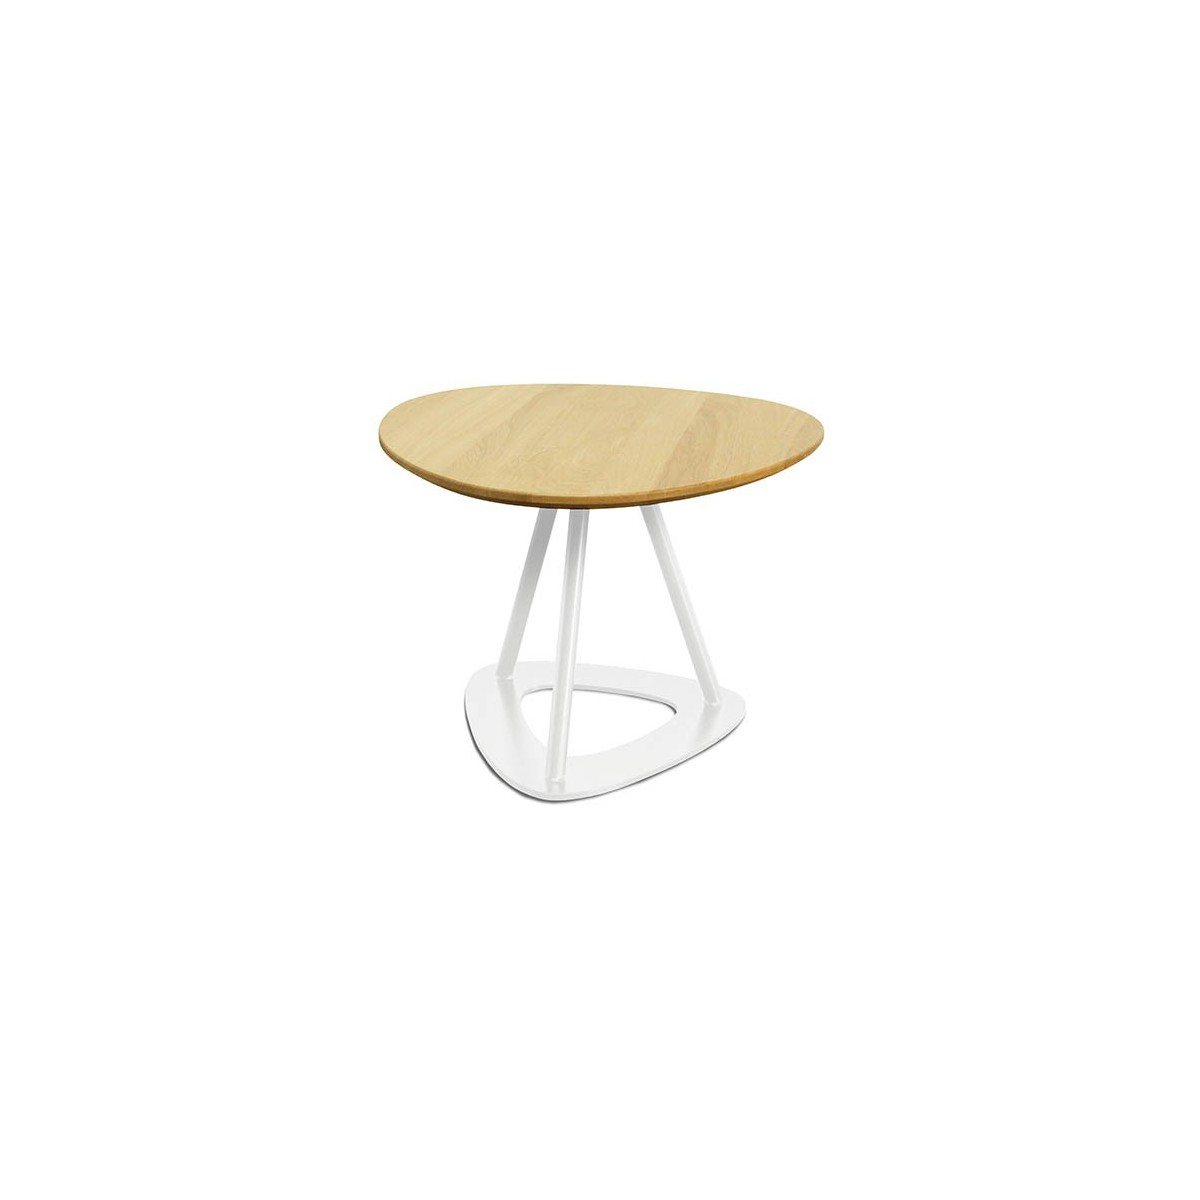 Tables basses contemporaines en ch ne et acier pop bois by for Table basse moderne bois